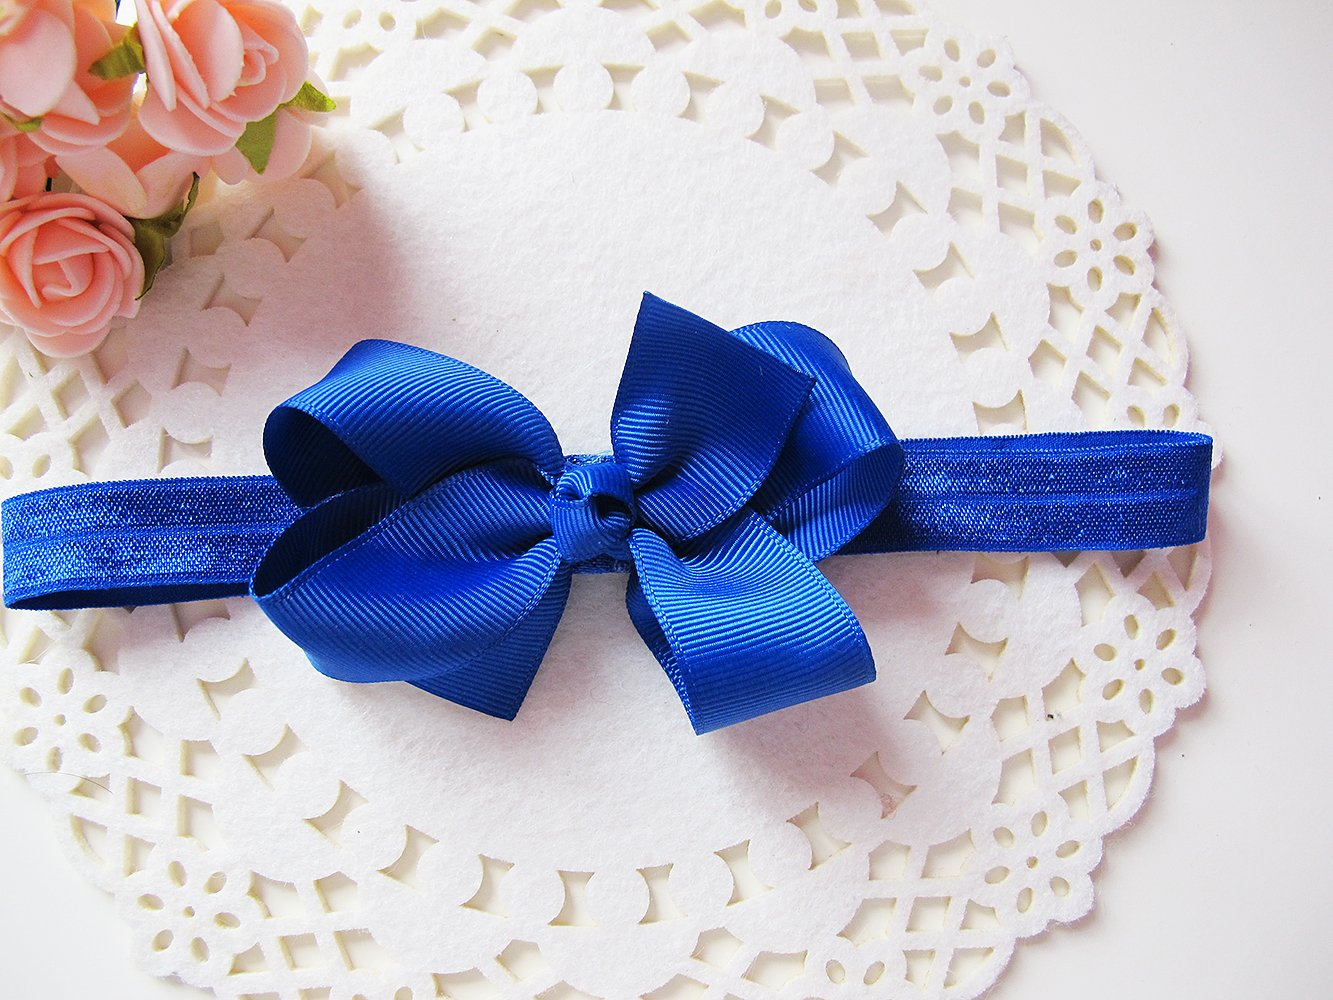 Baby Girls Hair Bows Soft Headband Hairband Hair Band Accessories (Royal  Blue)  Amazon.co.uk  Beauty 867cd9a0792